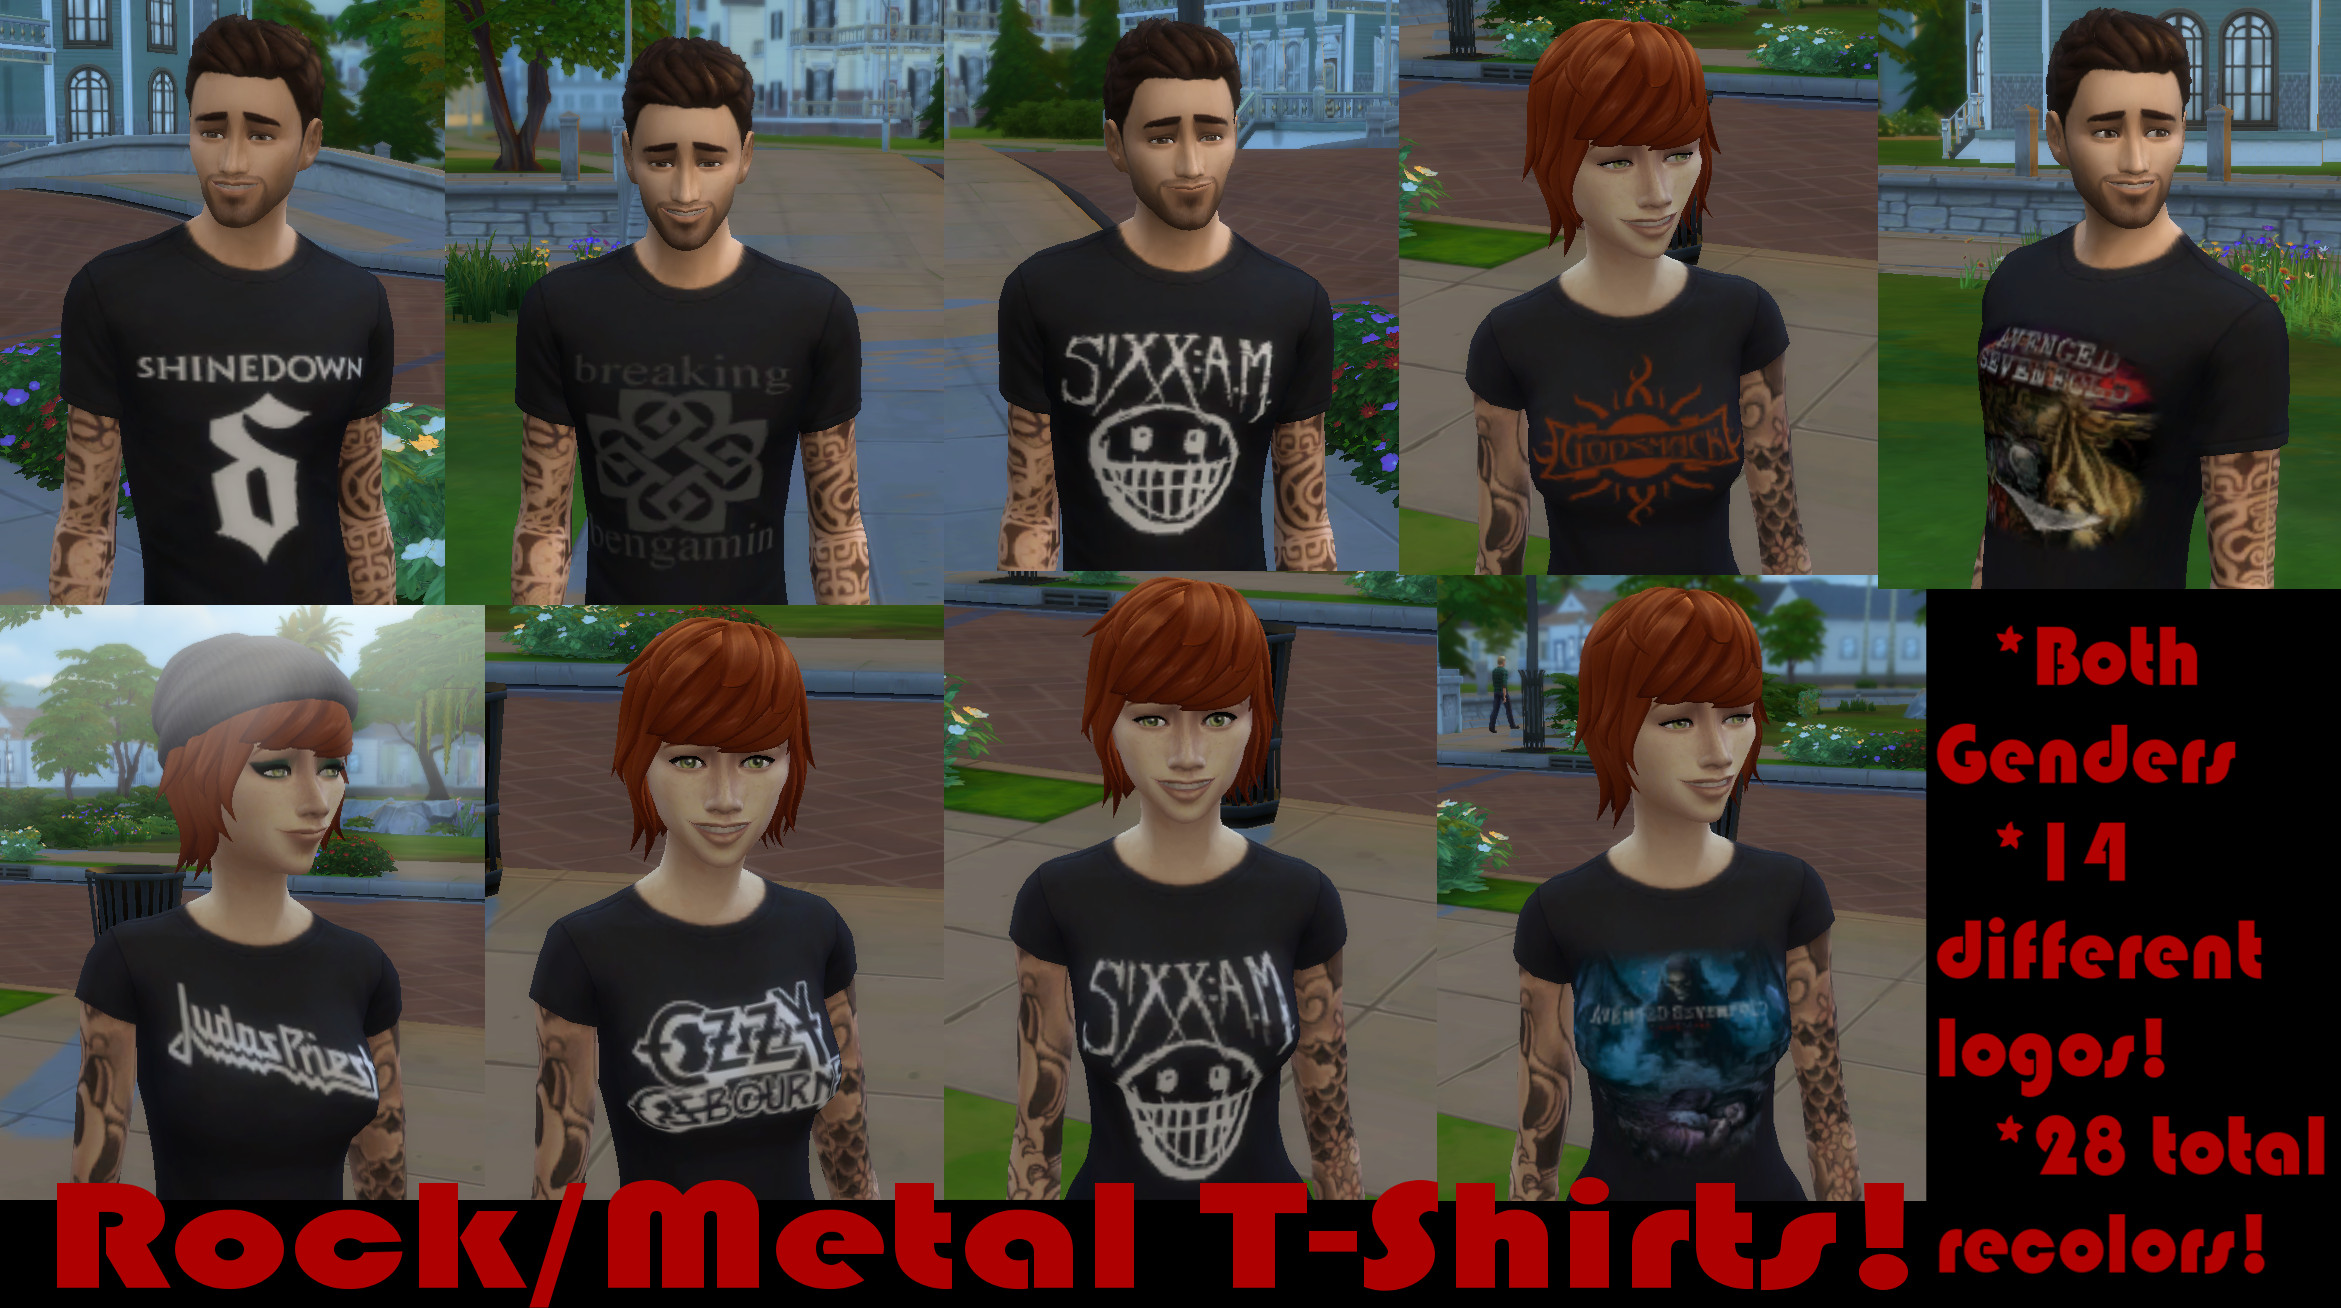 c3d7ffdf7 Mod The Sims - Rock/Metal T-Shirts (Both Genders :))